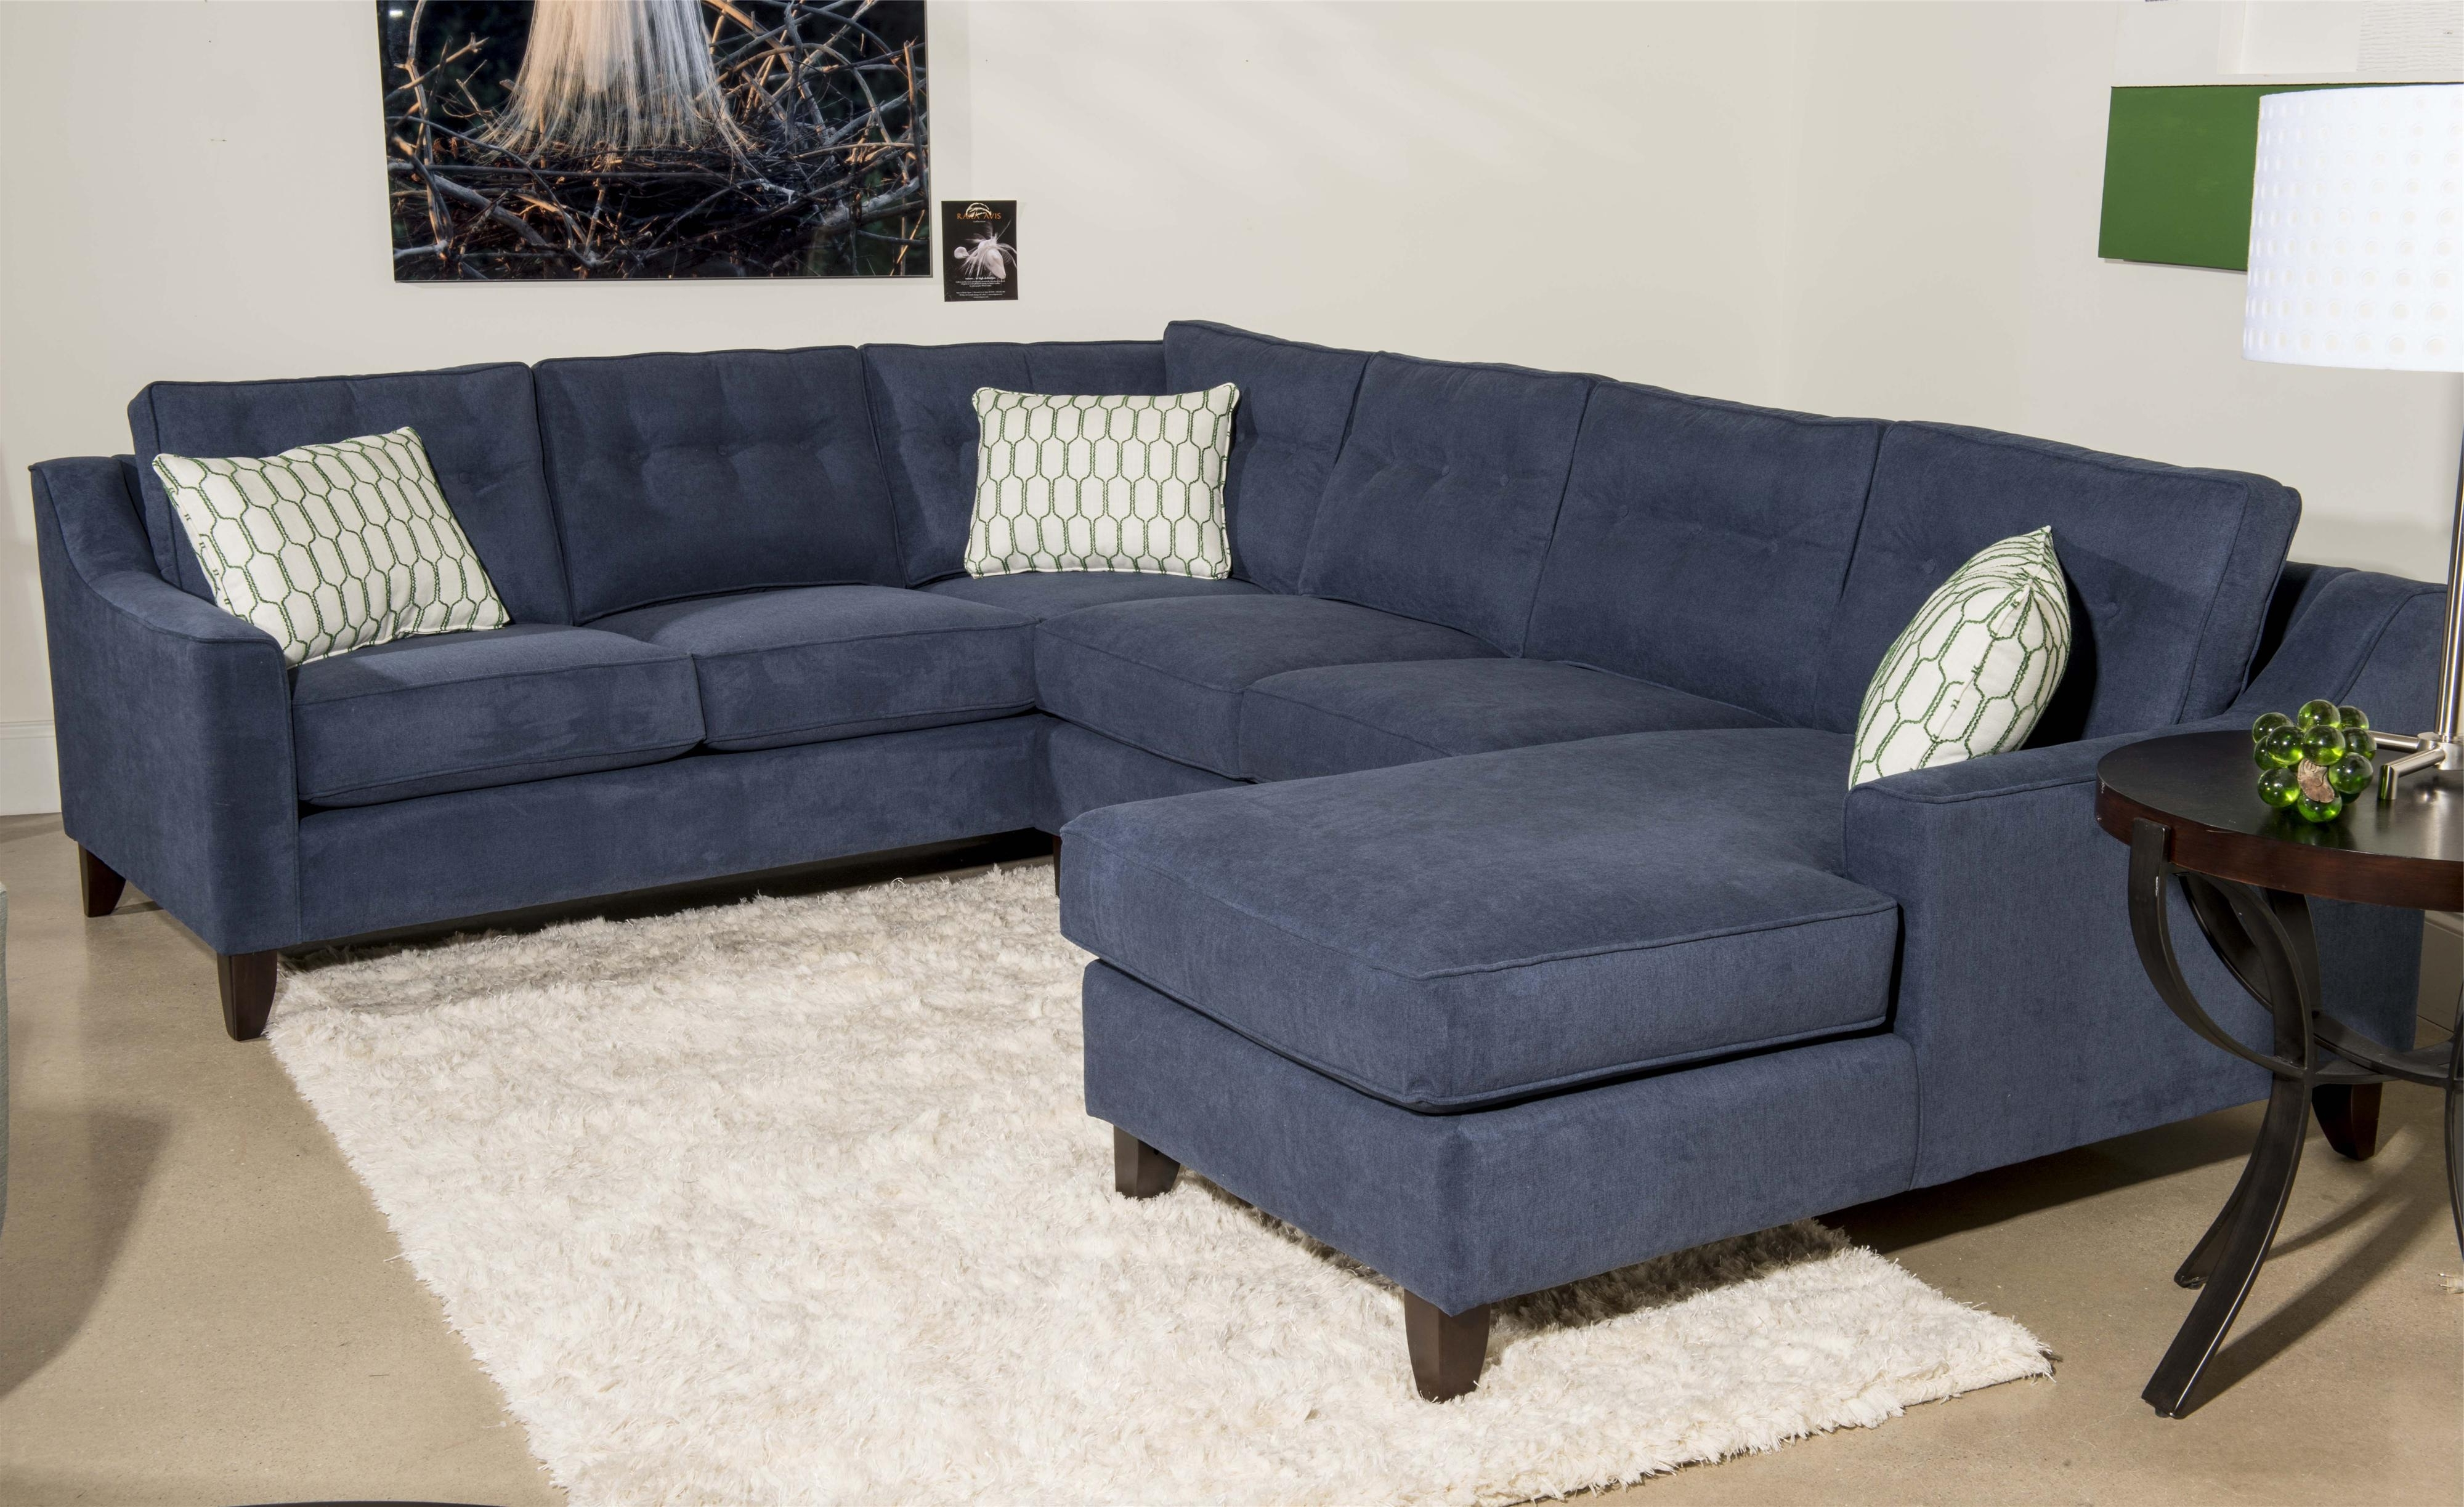 Contemporary 3 Piece Sectional Sofa With Chaiseklaussner Within Fashionable 3 Piece Sectional Sofas With Chaise (View 2 of 15)